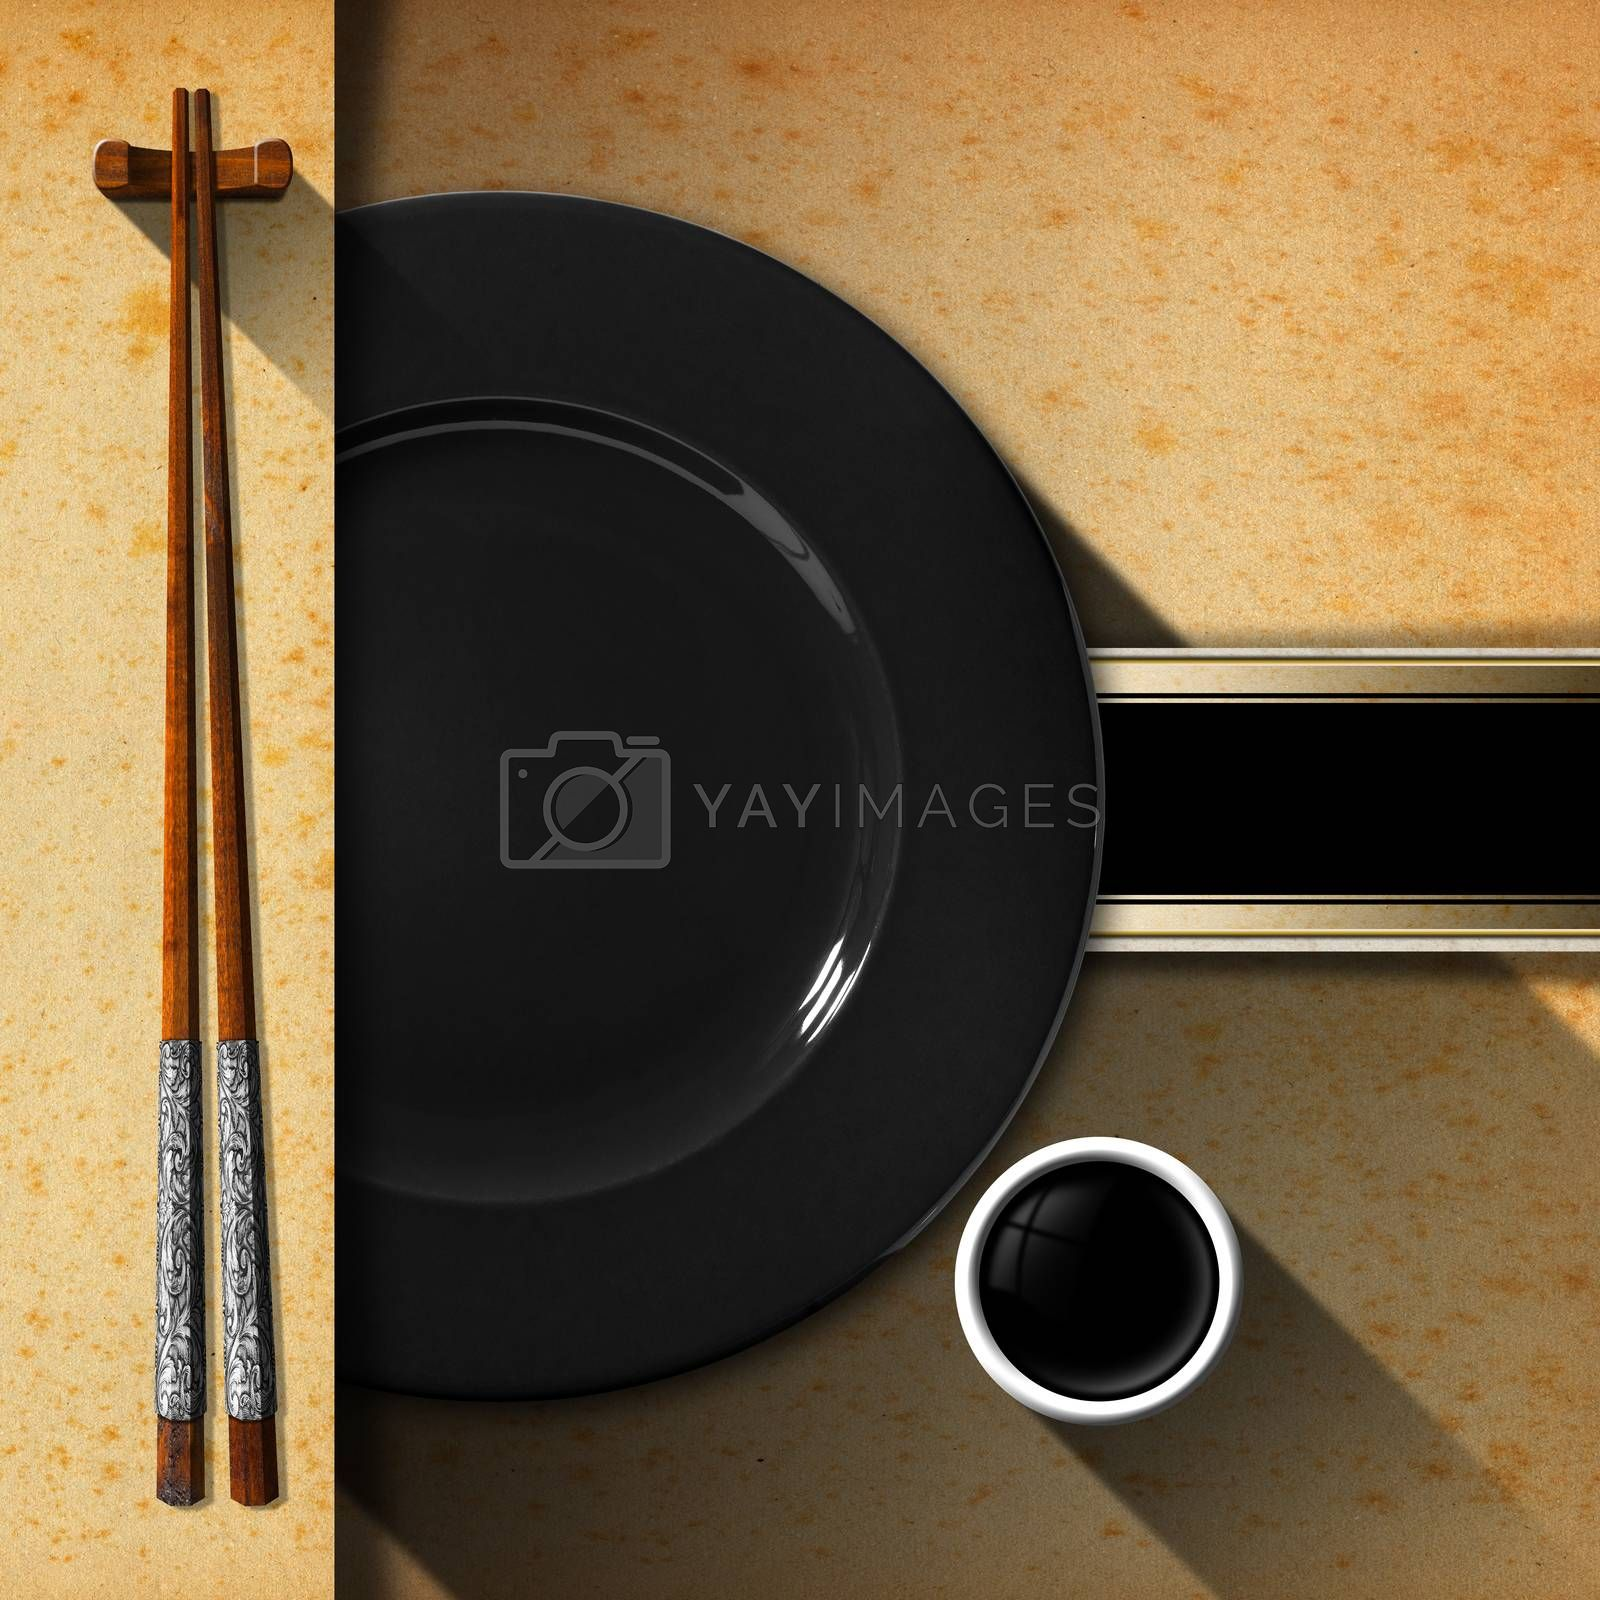 Template for an Asian menu with wooden and silver chopsticks, black plate and a bowl of sauce. Black band with space for text on yellowed paper